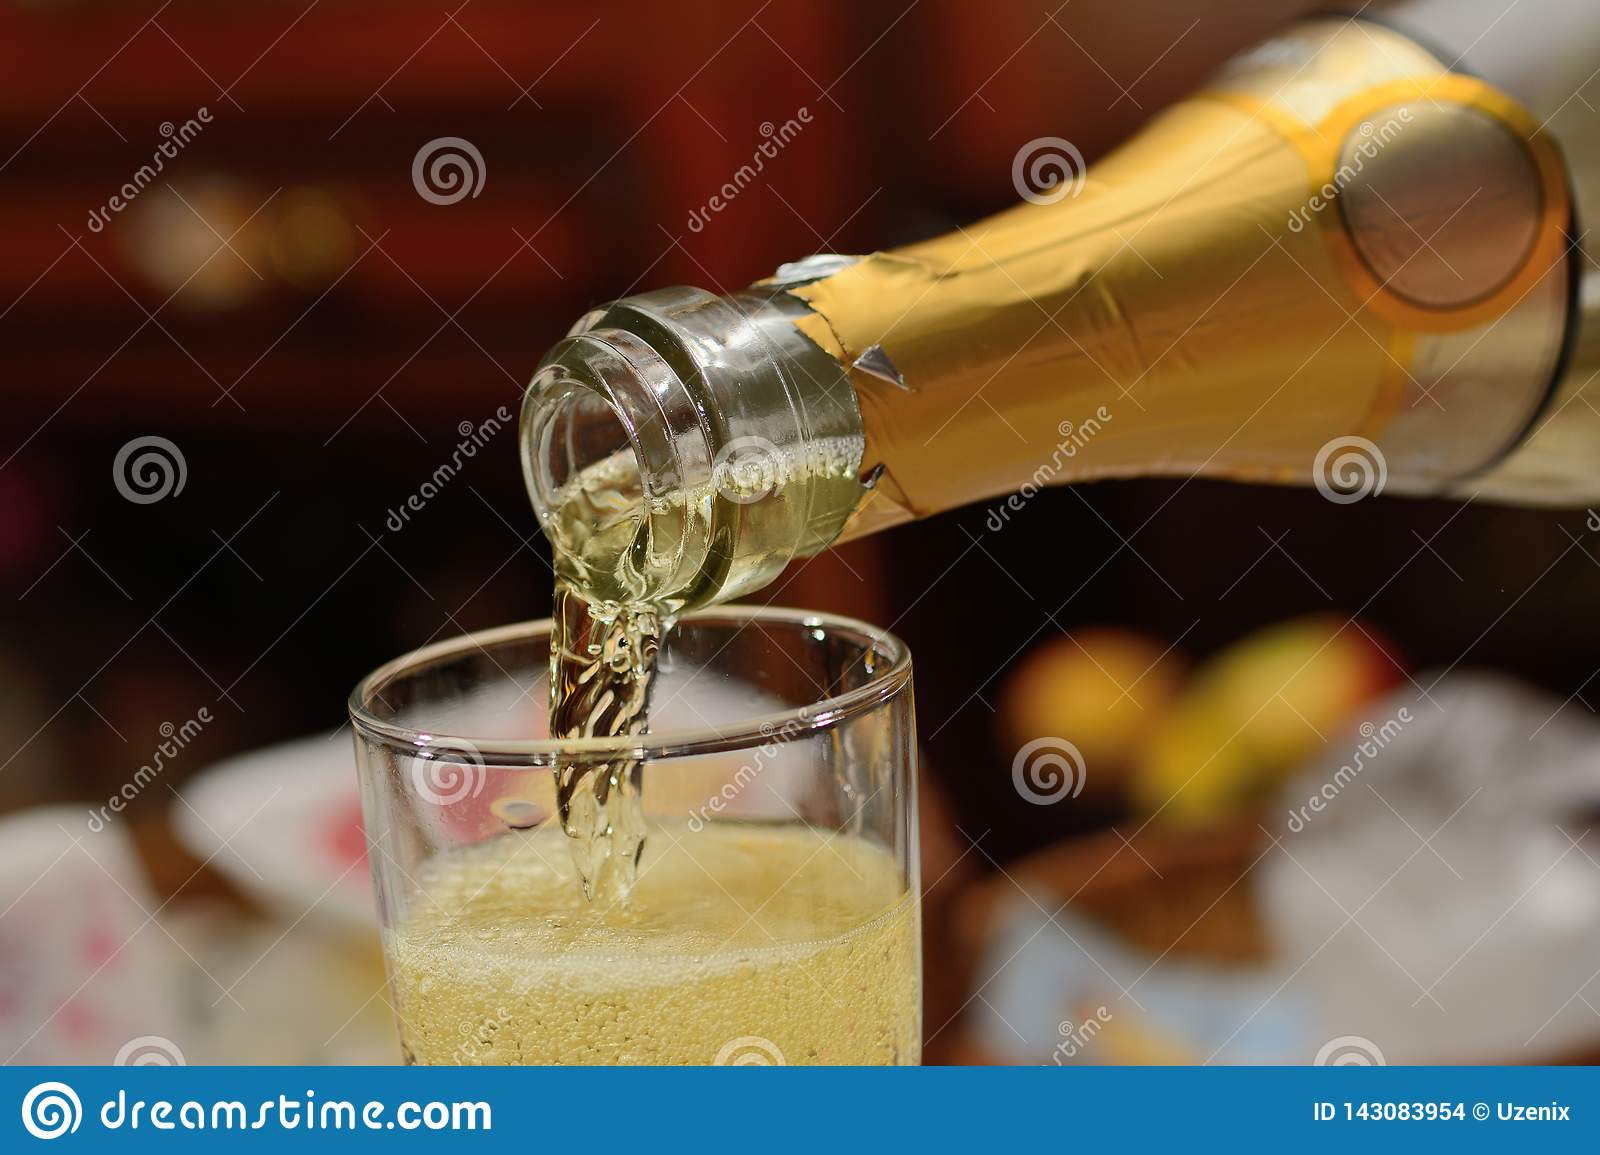 Champagne from a bottle is poured in a glass close up